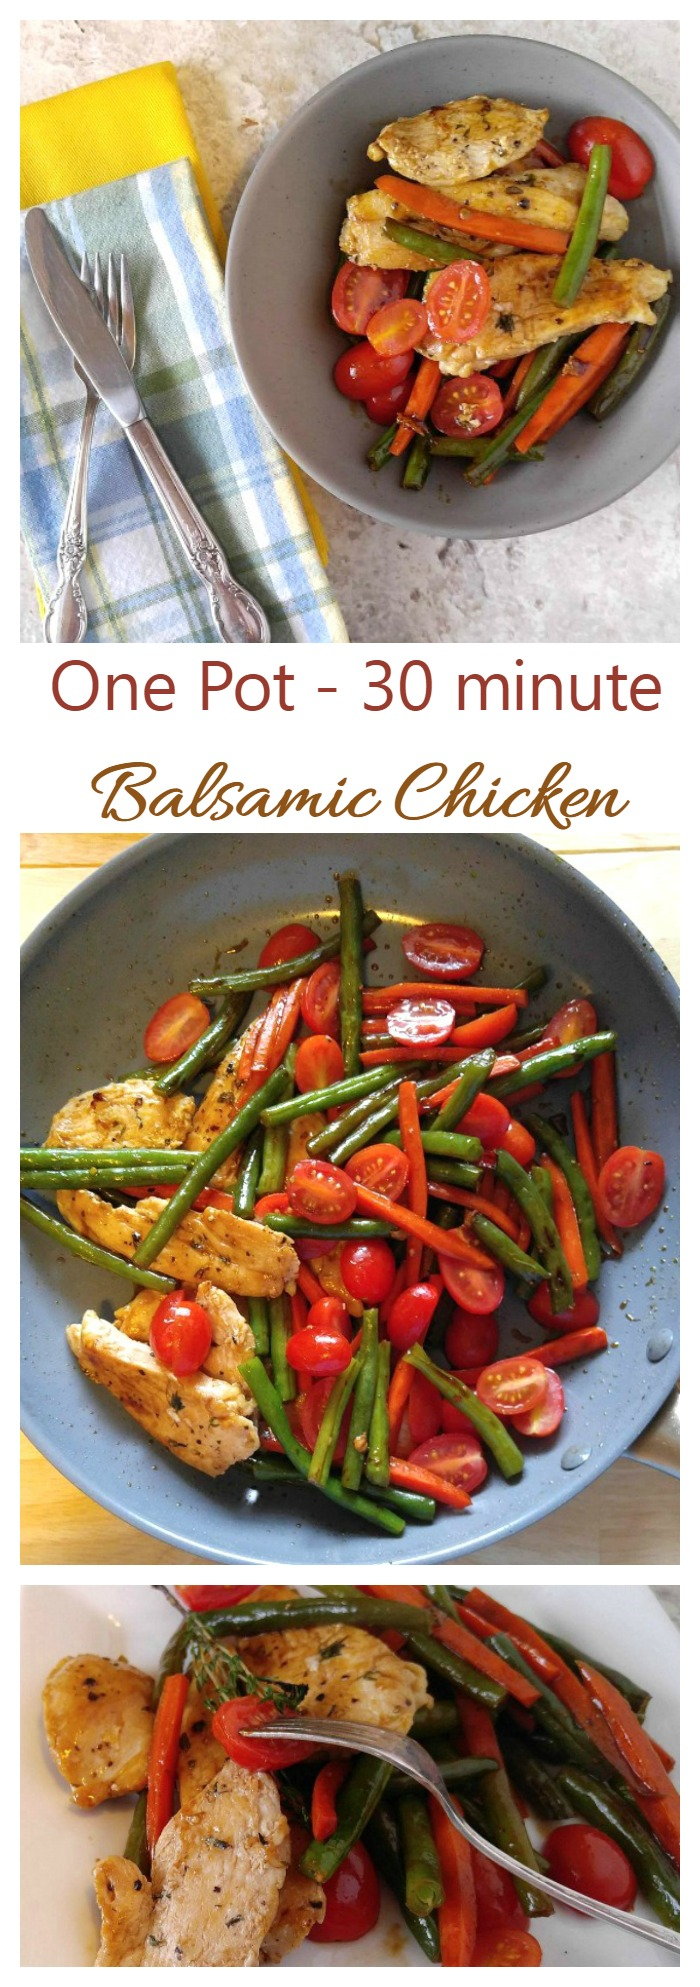 One Pot Balsamic Chicken & Vegetables - 30 Minute Meal